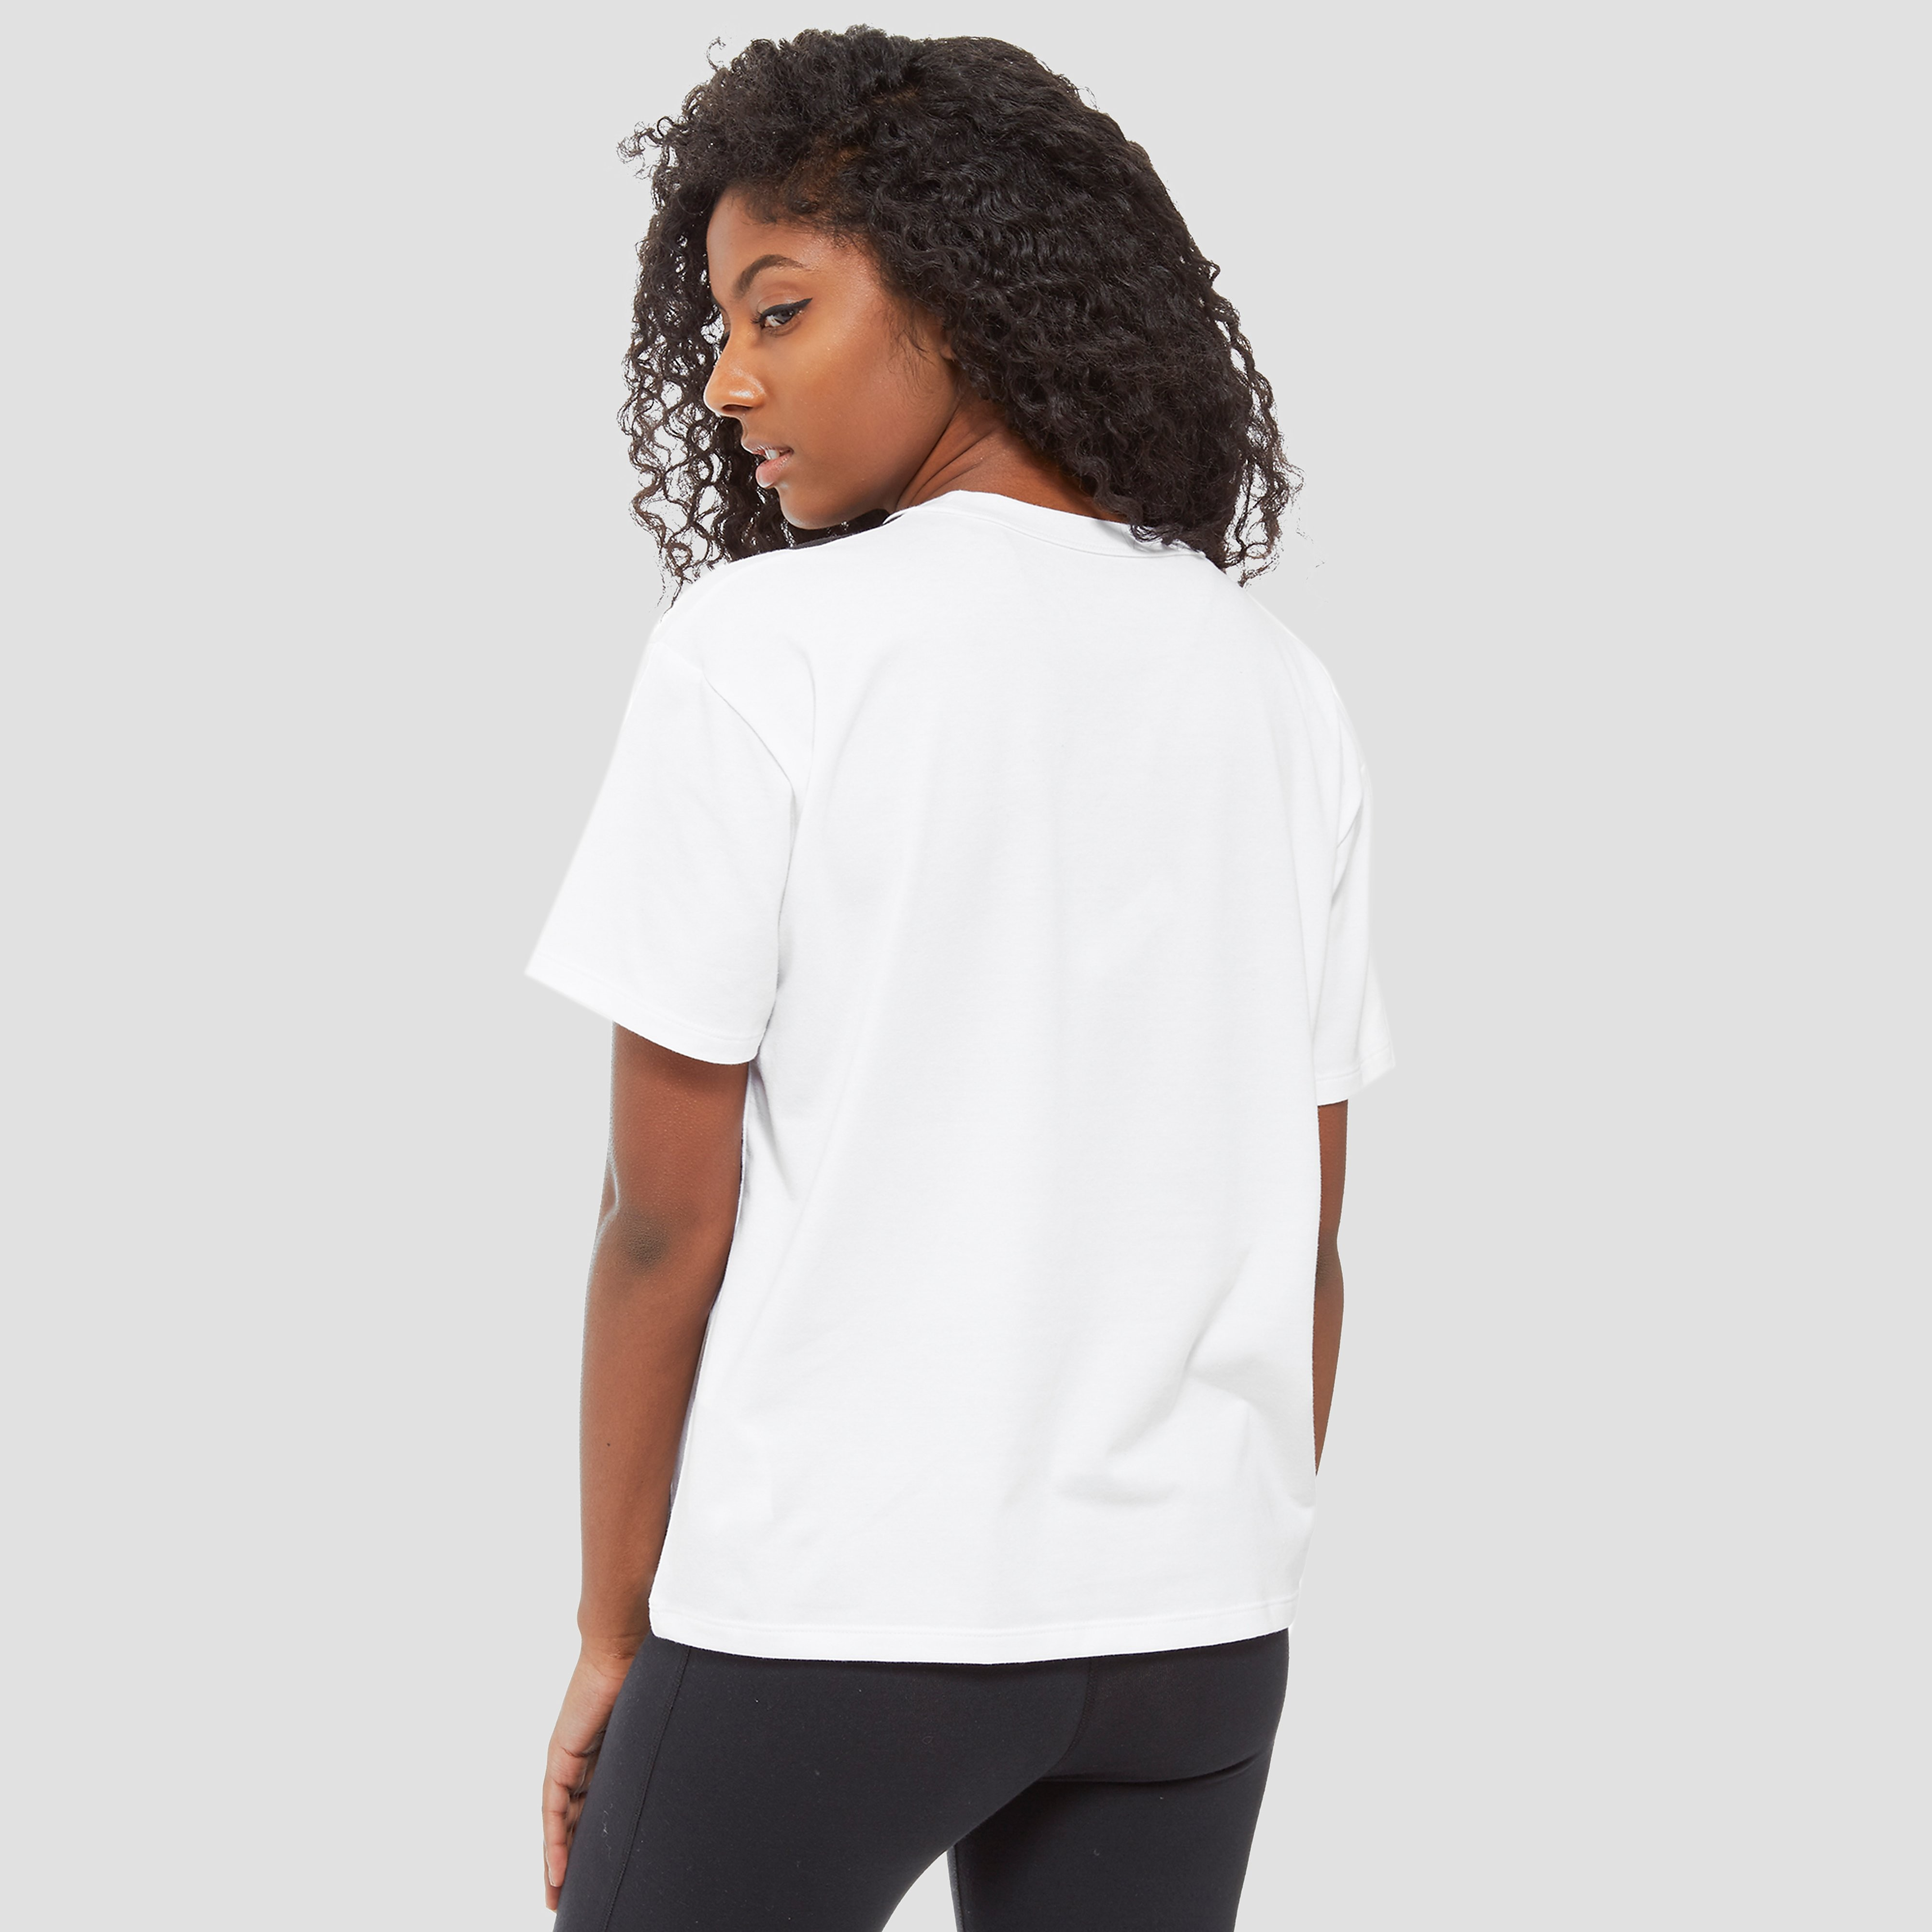 Under Armour Graphic Women's  T-Shirt